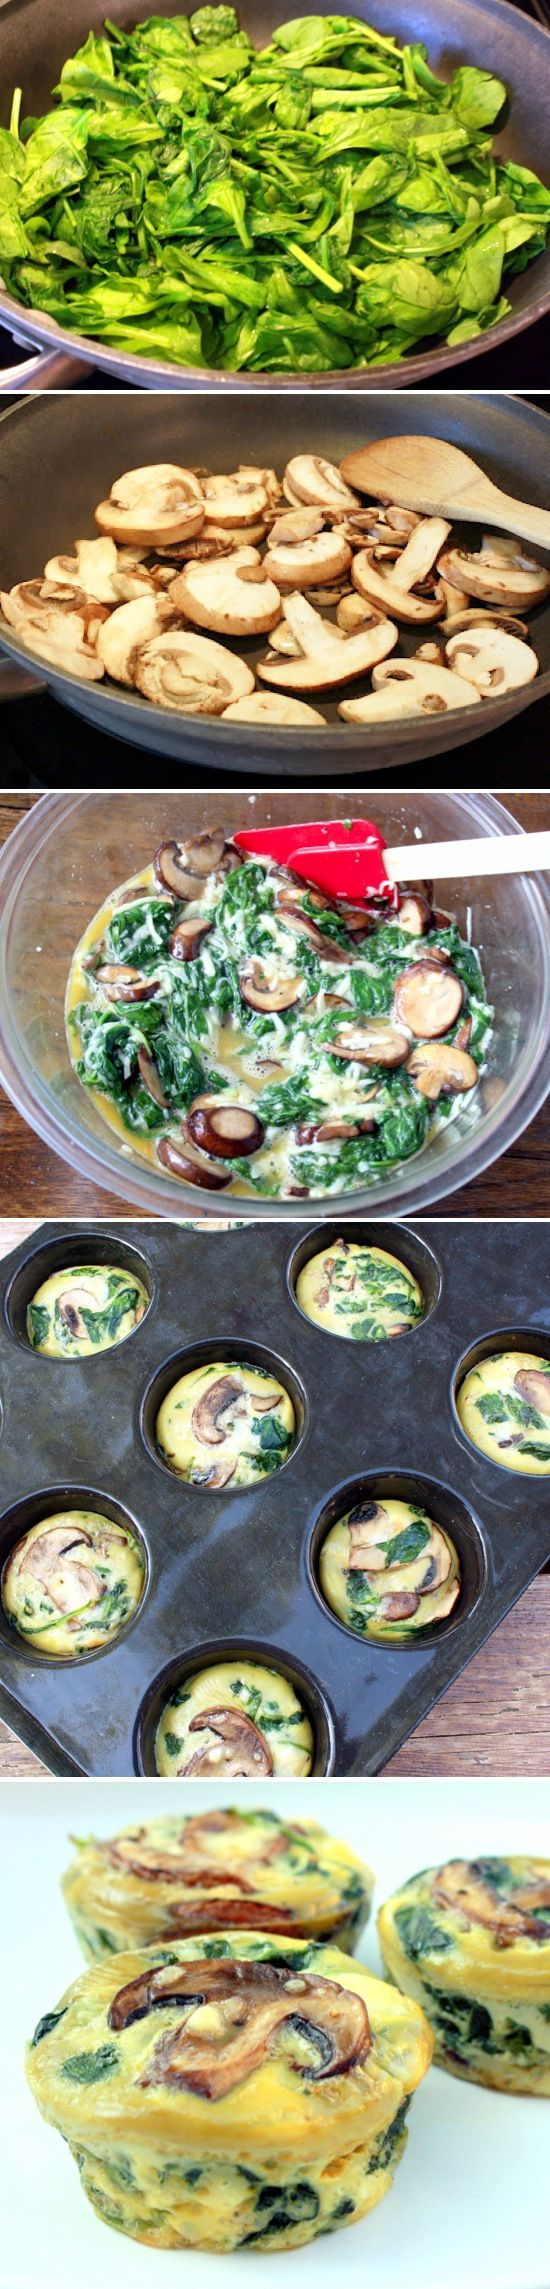 Spinach Egg Cups -- excellent to make on prep day for week day breakfasts or snacks. #lowcarb